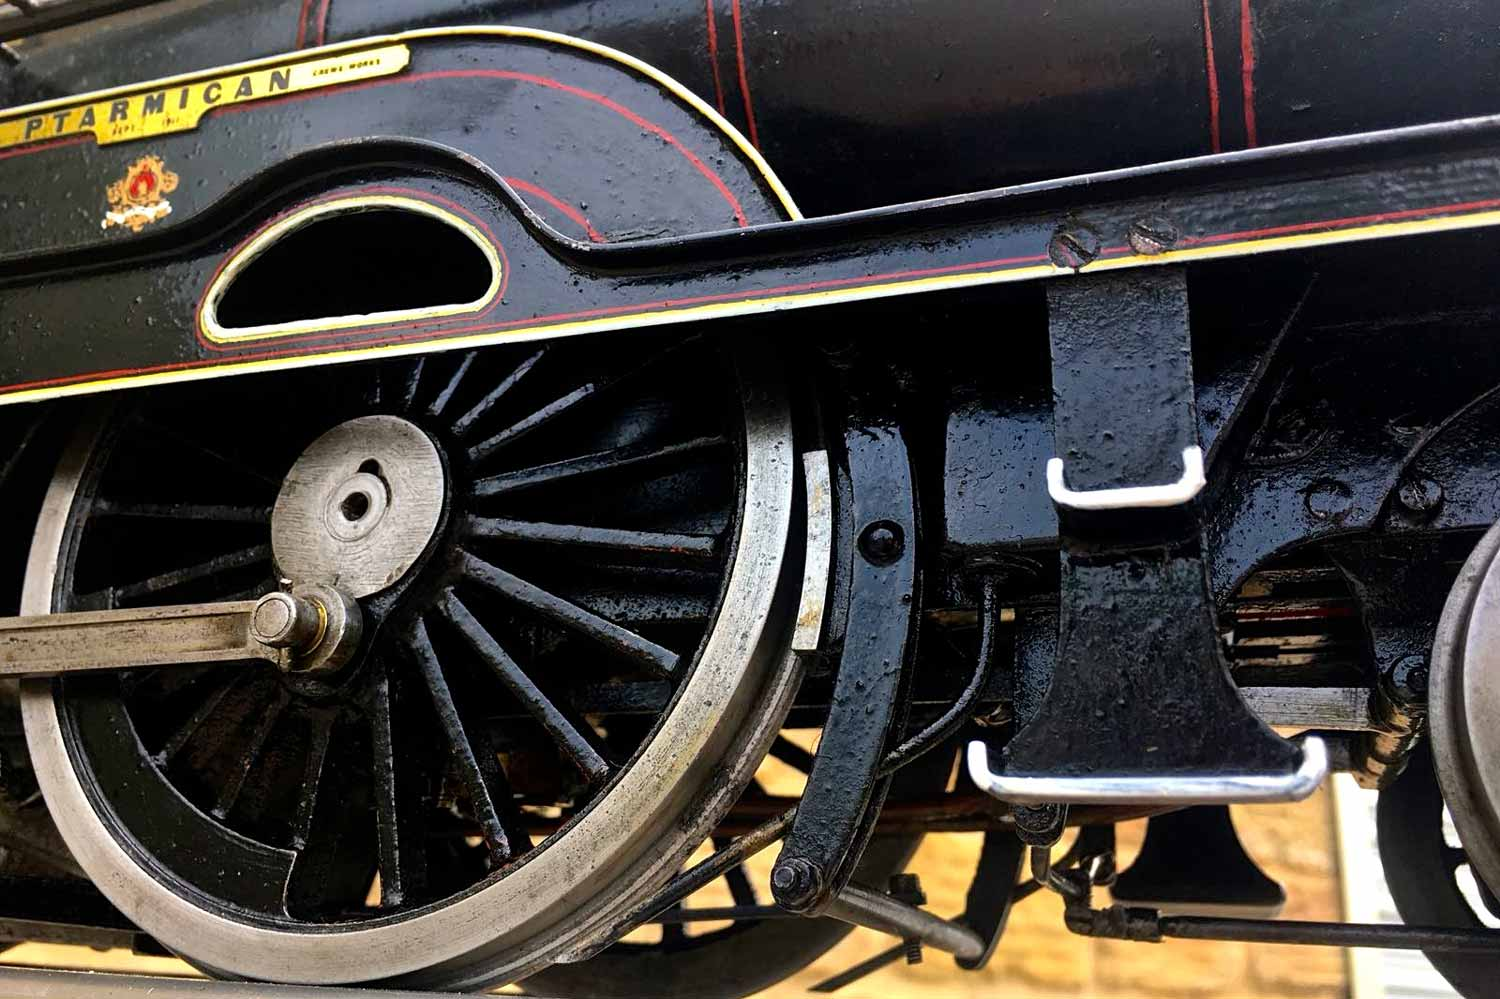 test 3-and-a-half-inch-LNWR-King-George-the-Fifth-live-steam-locomotive-for-sale-14